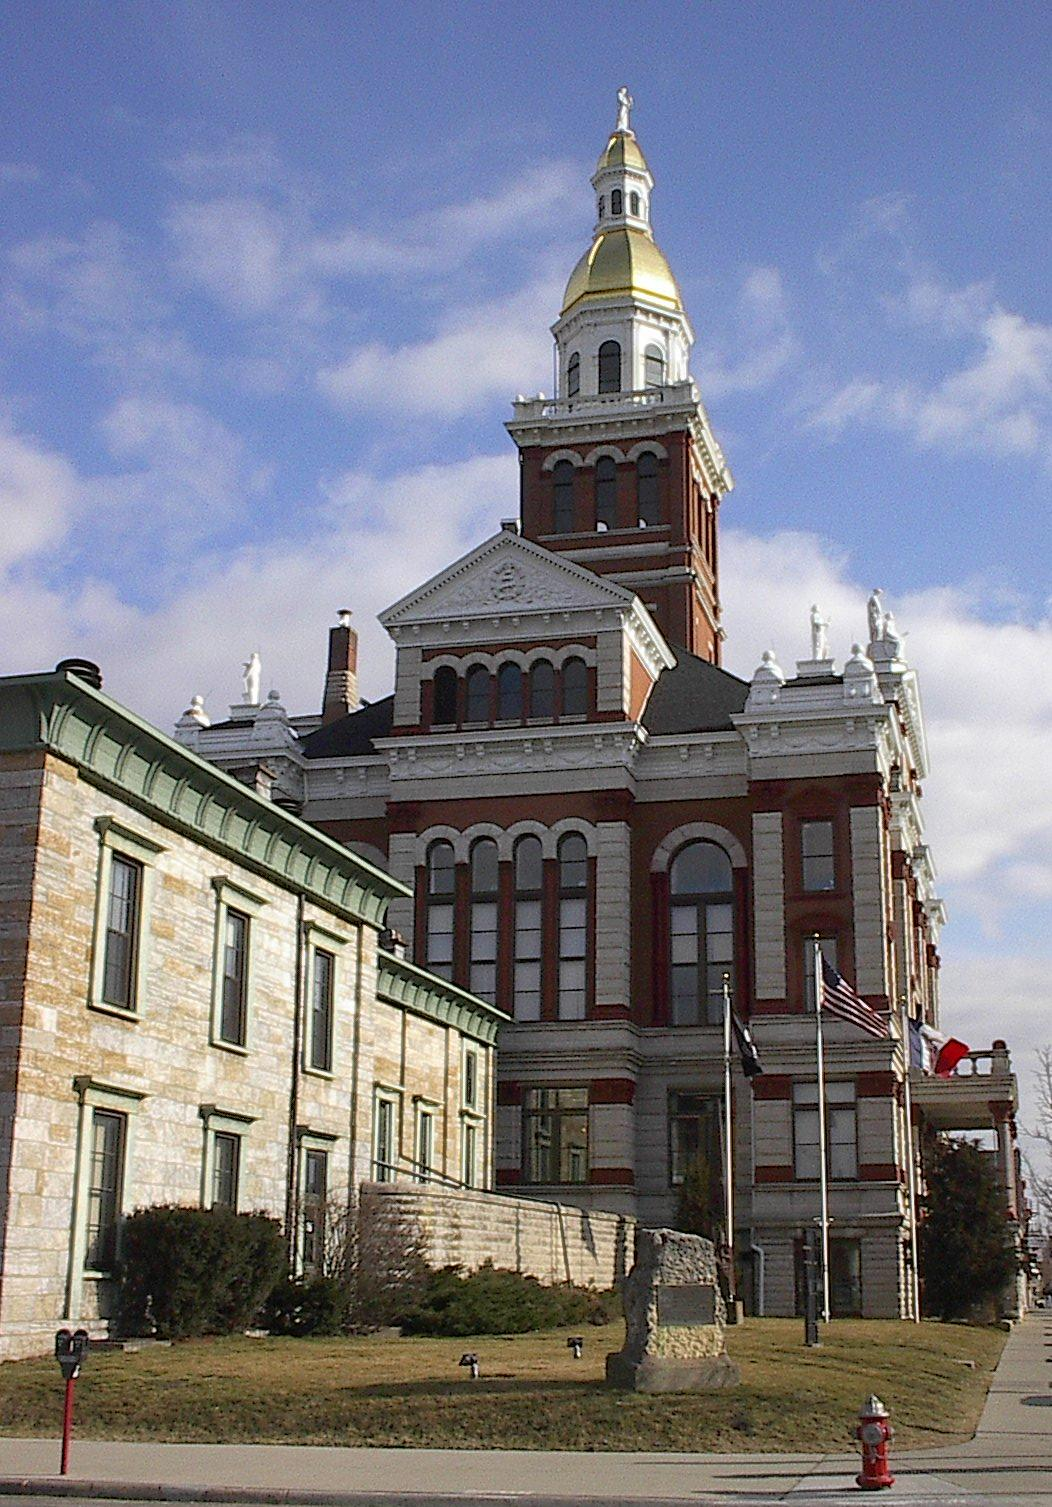 OLD JAIL AND DUBUQUE COUNTY COURTHOUSE, March 26, 2002